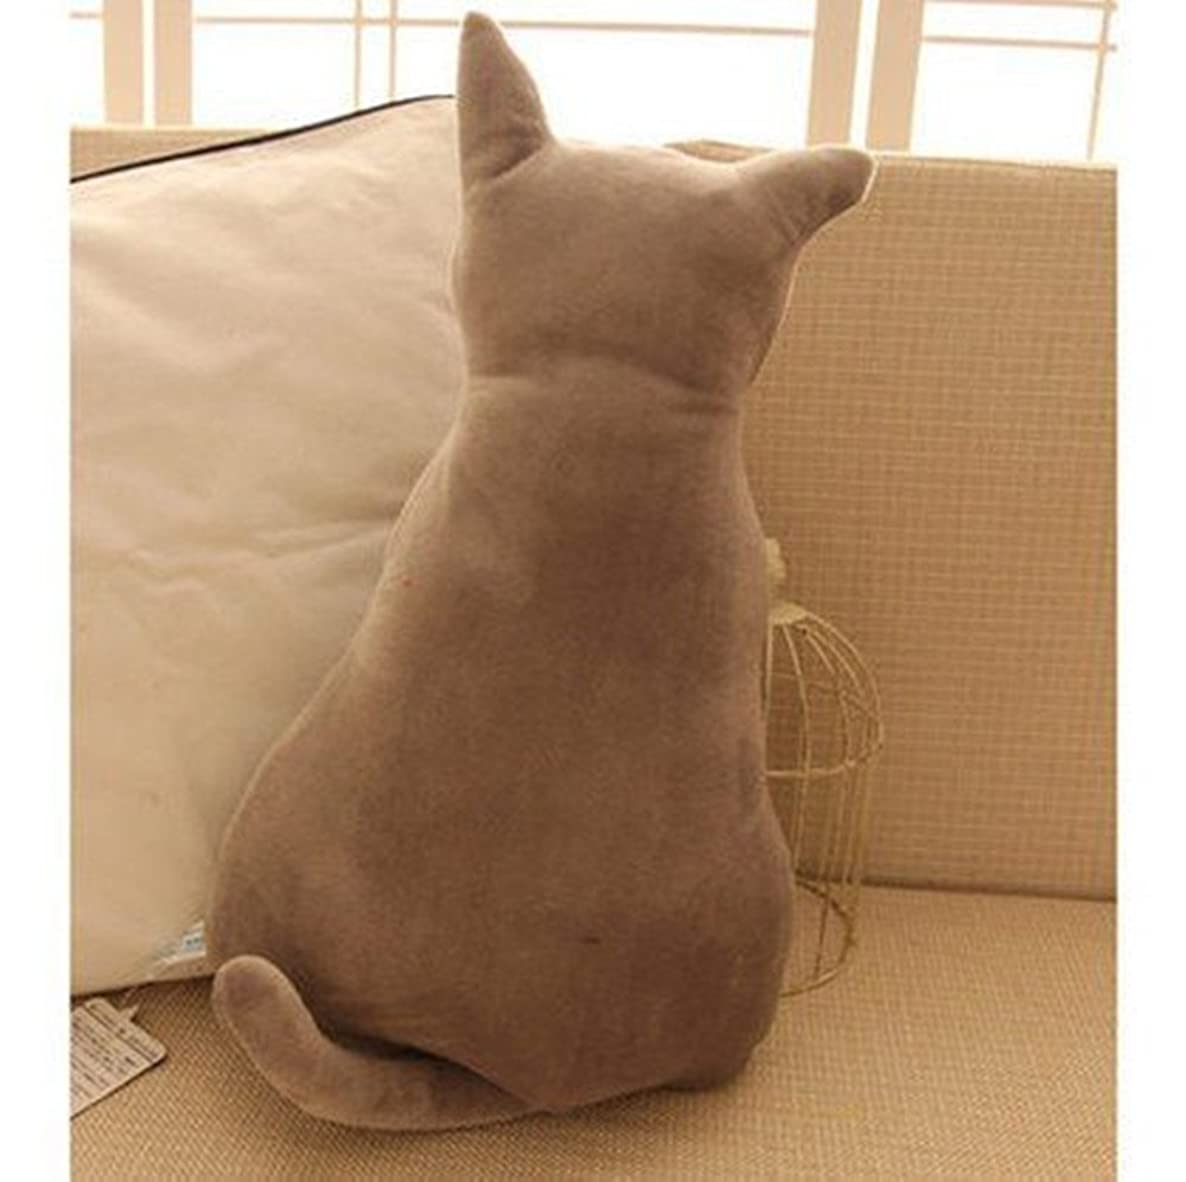 Cat Throw Pillow Christmas Gift Lovely Cat Shaped Design Stuffed Animal Throw Pillow for home decoration for Kids (45cm, gray)